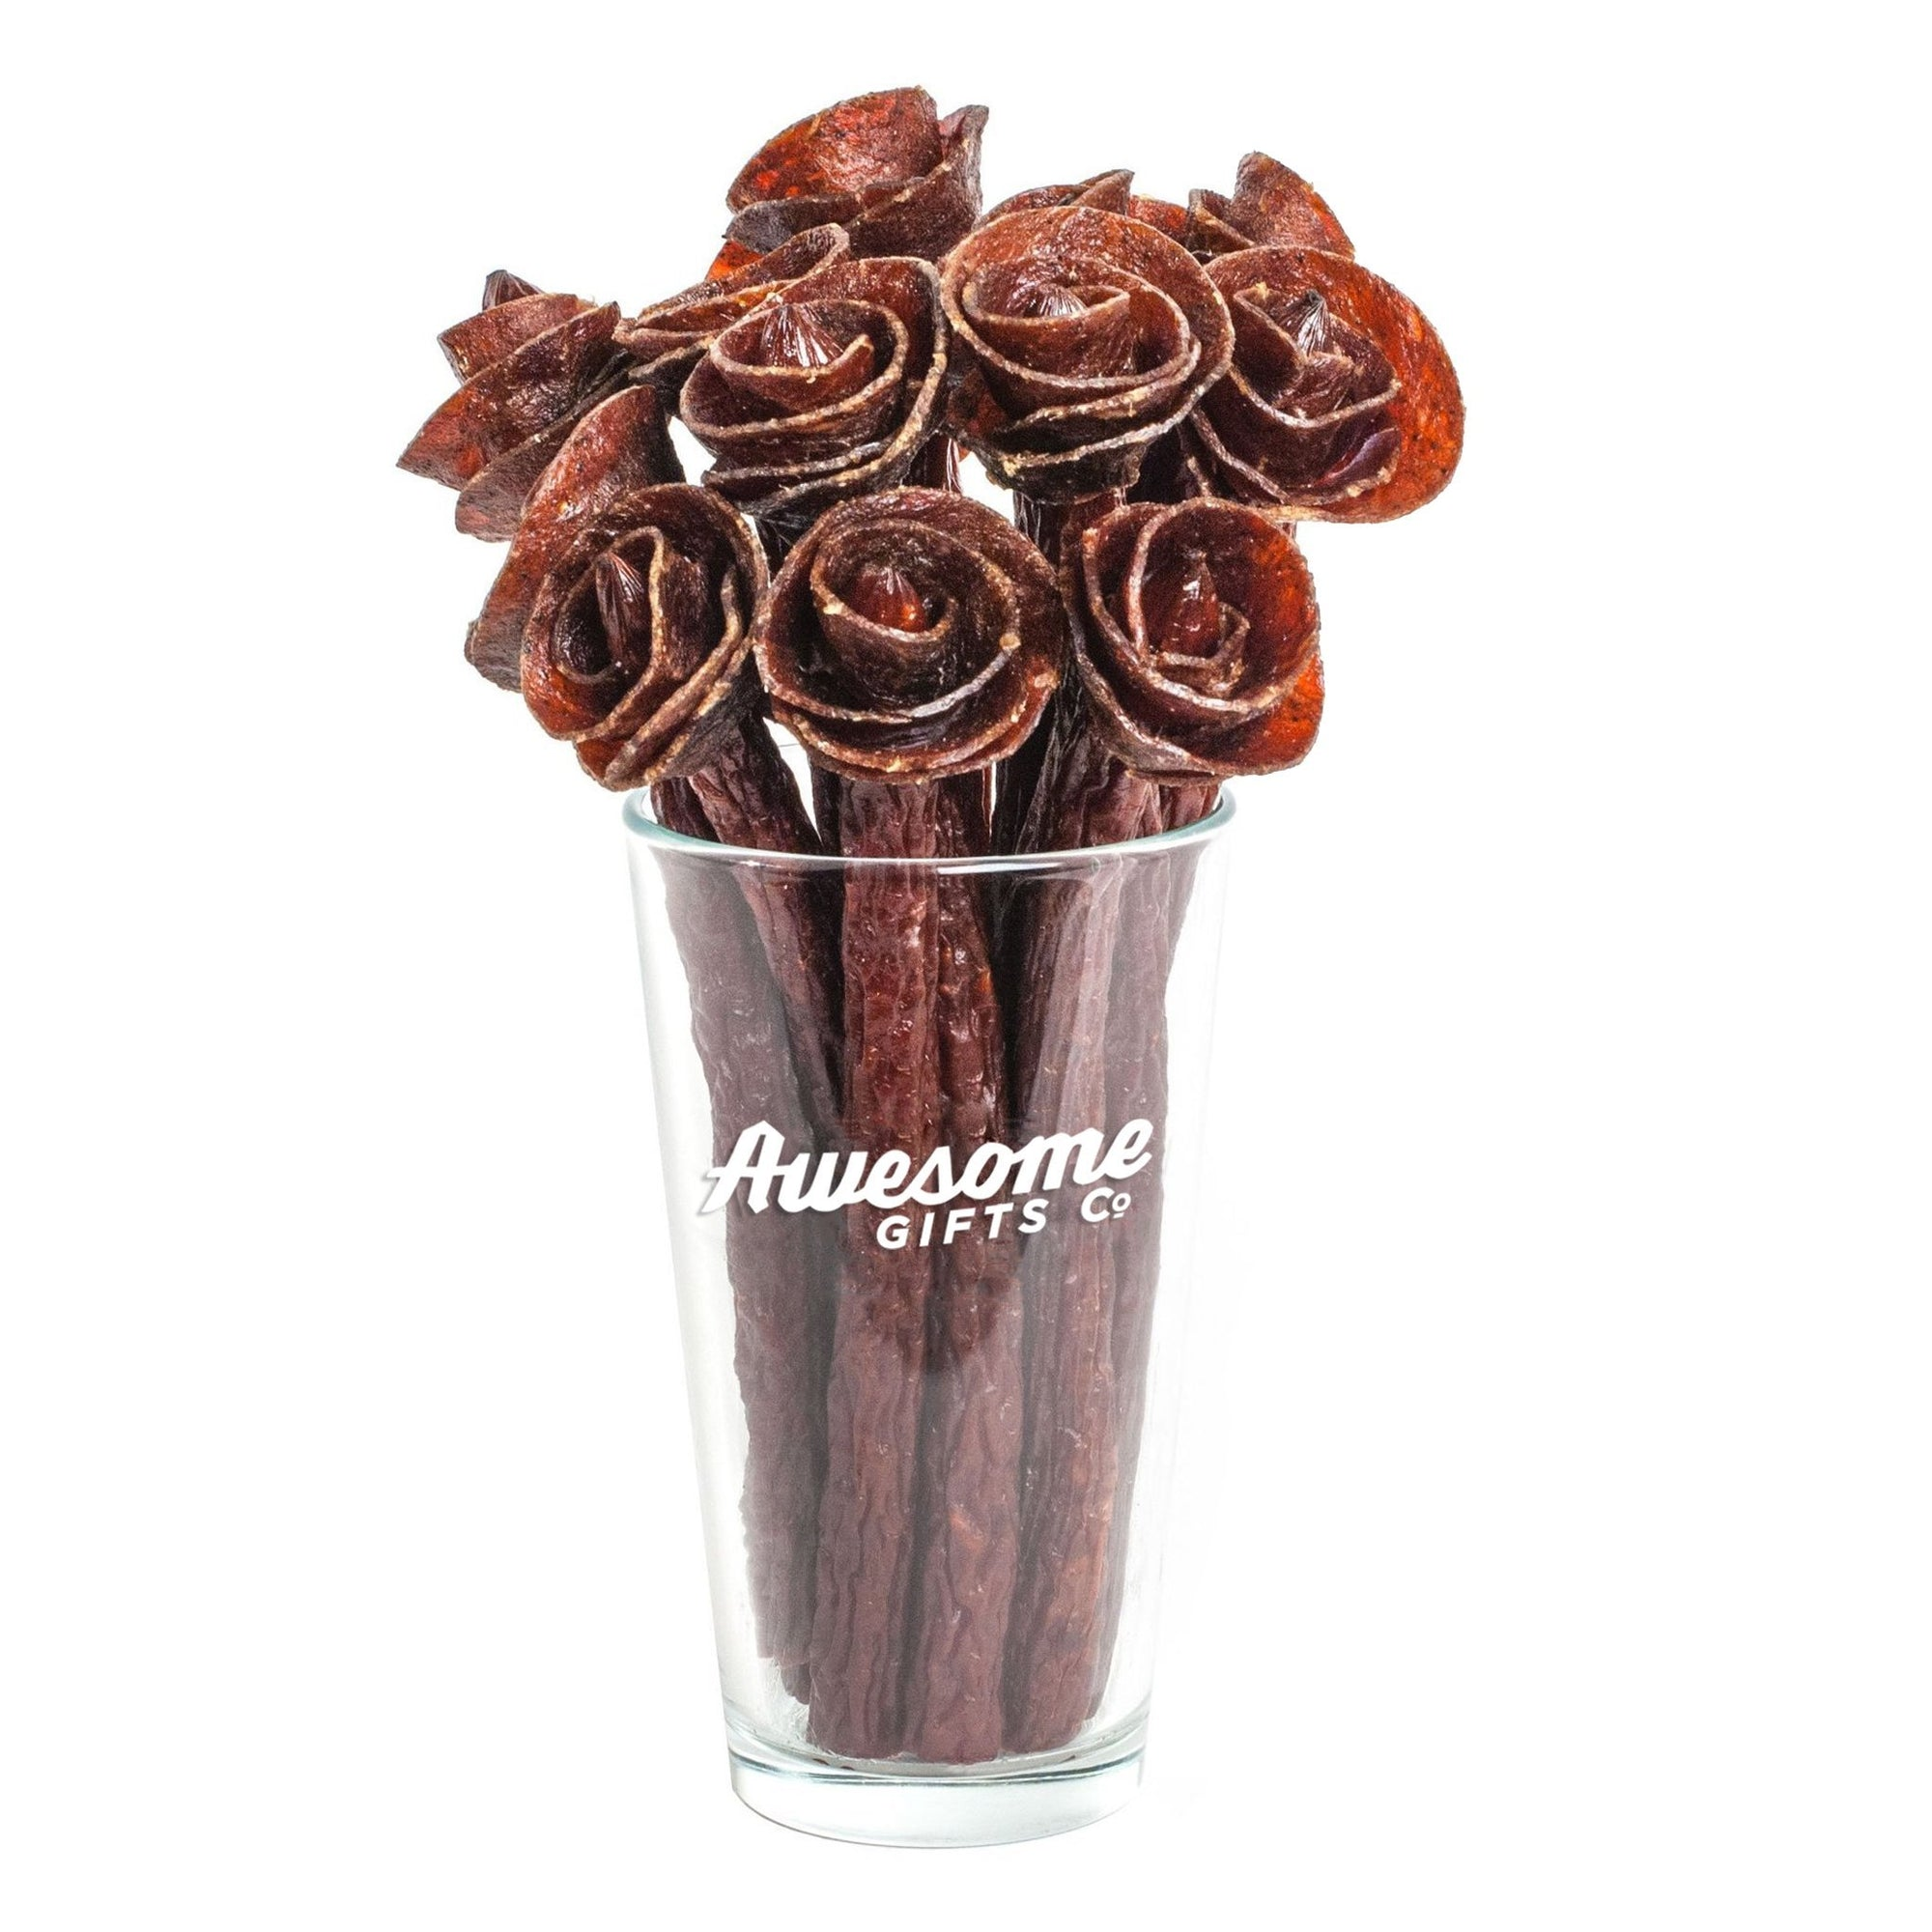 Awesome beef jerky roses in pint glass on white background